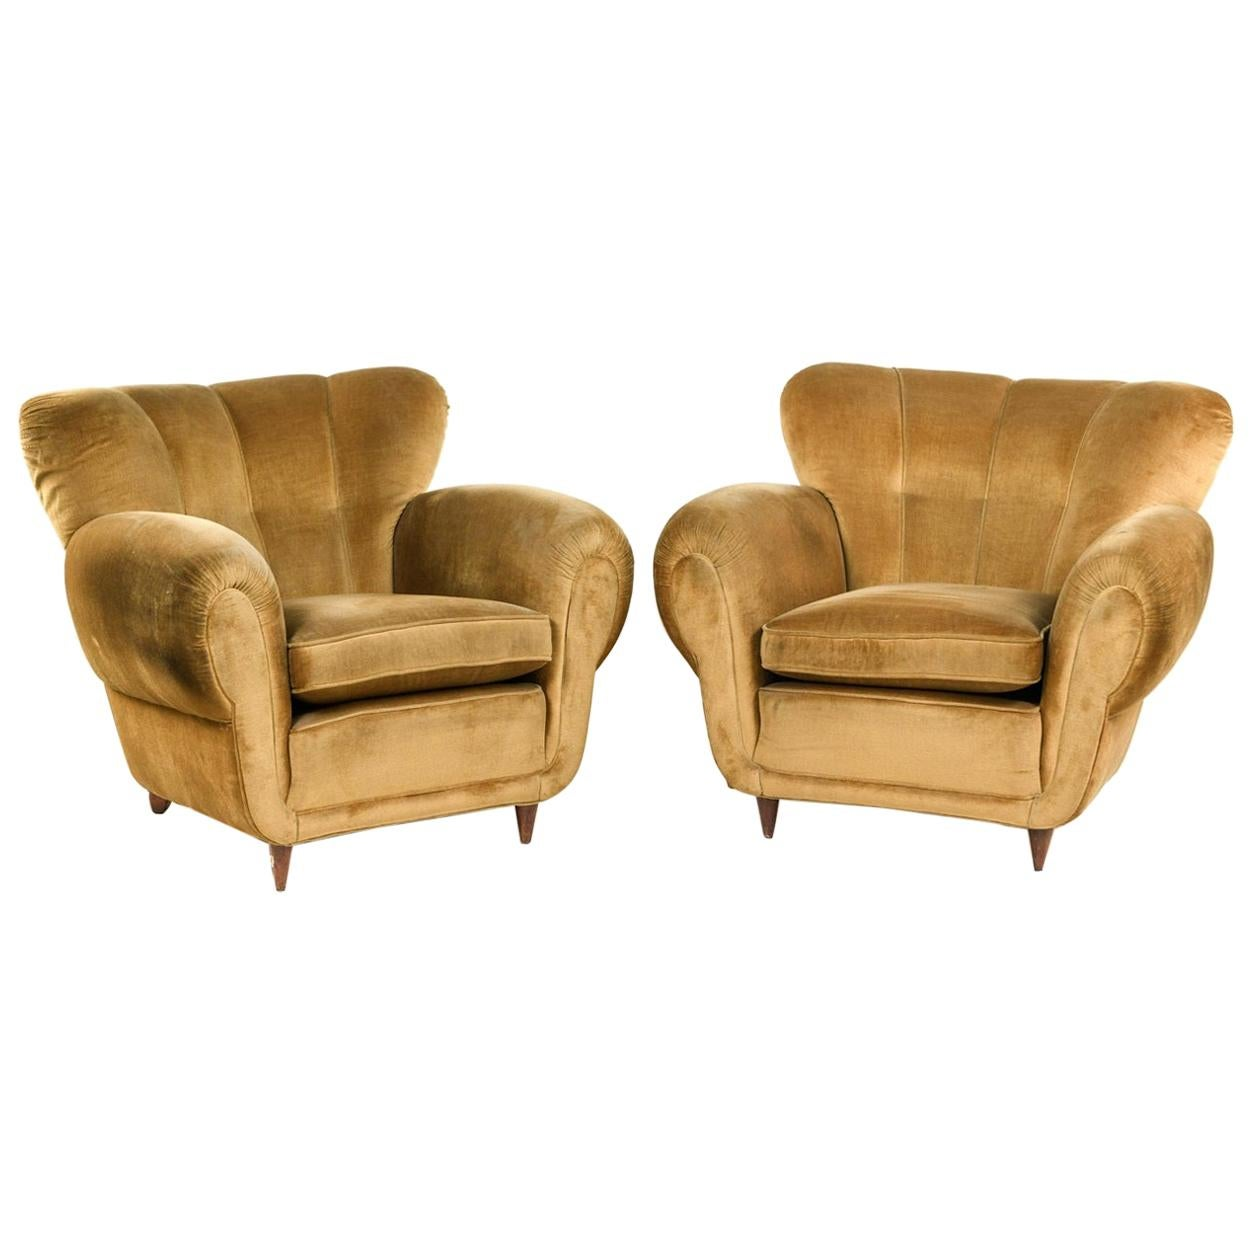 Pair of Large 1940s Italian Lounge Chairs Attributed to Guglielmo Ulrich